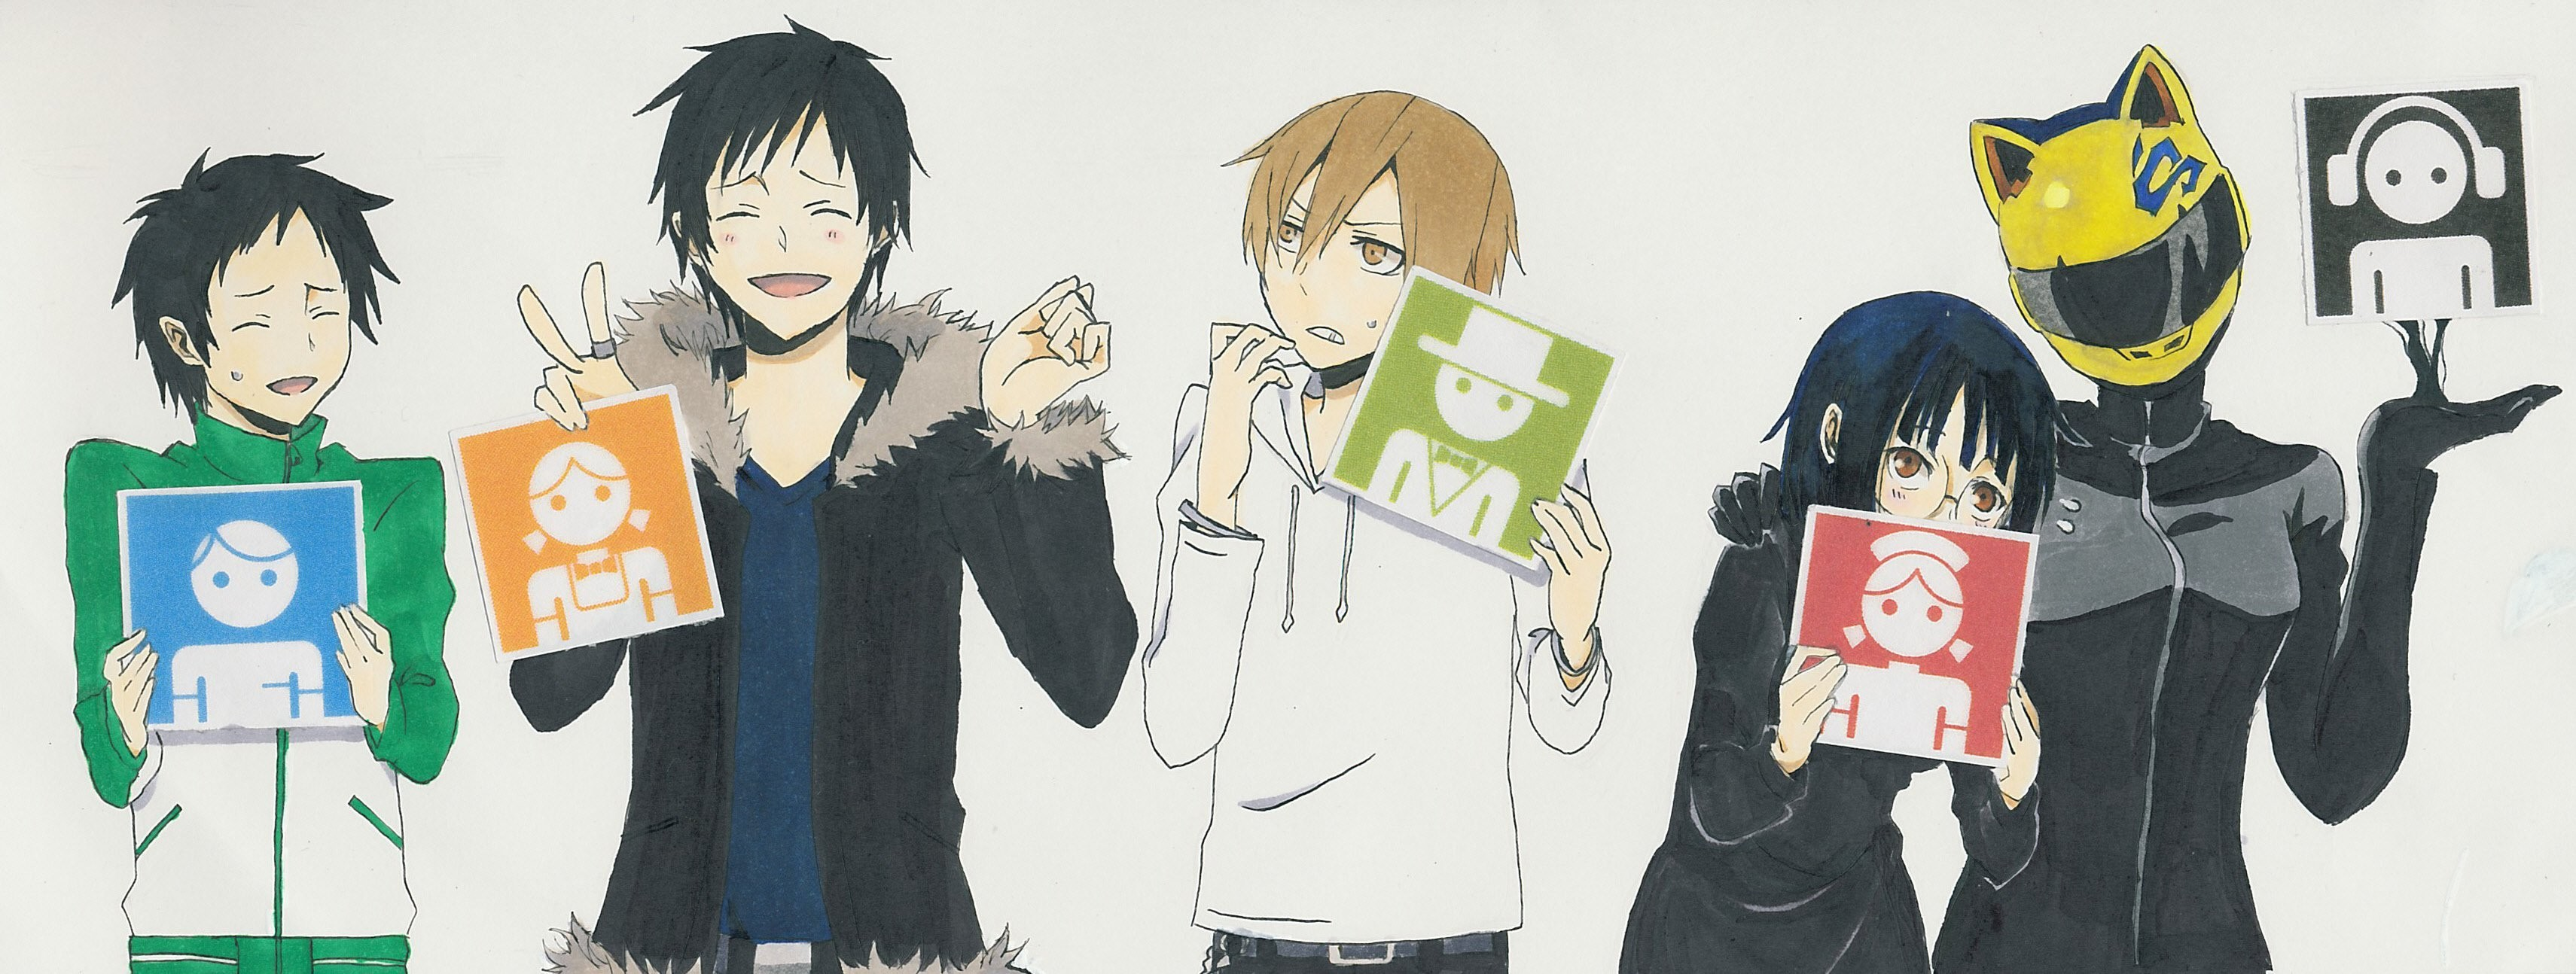 3421x1294 Download Free Durarara Wallpapers Pixelstalk Net